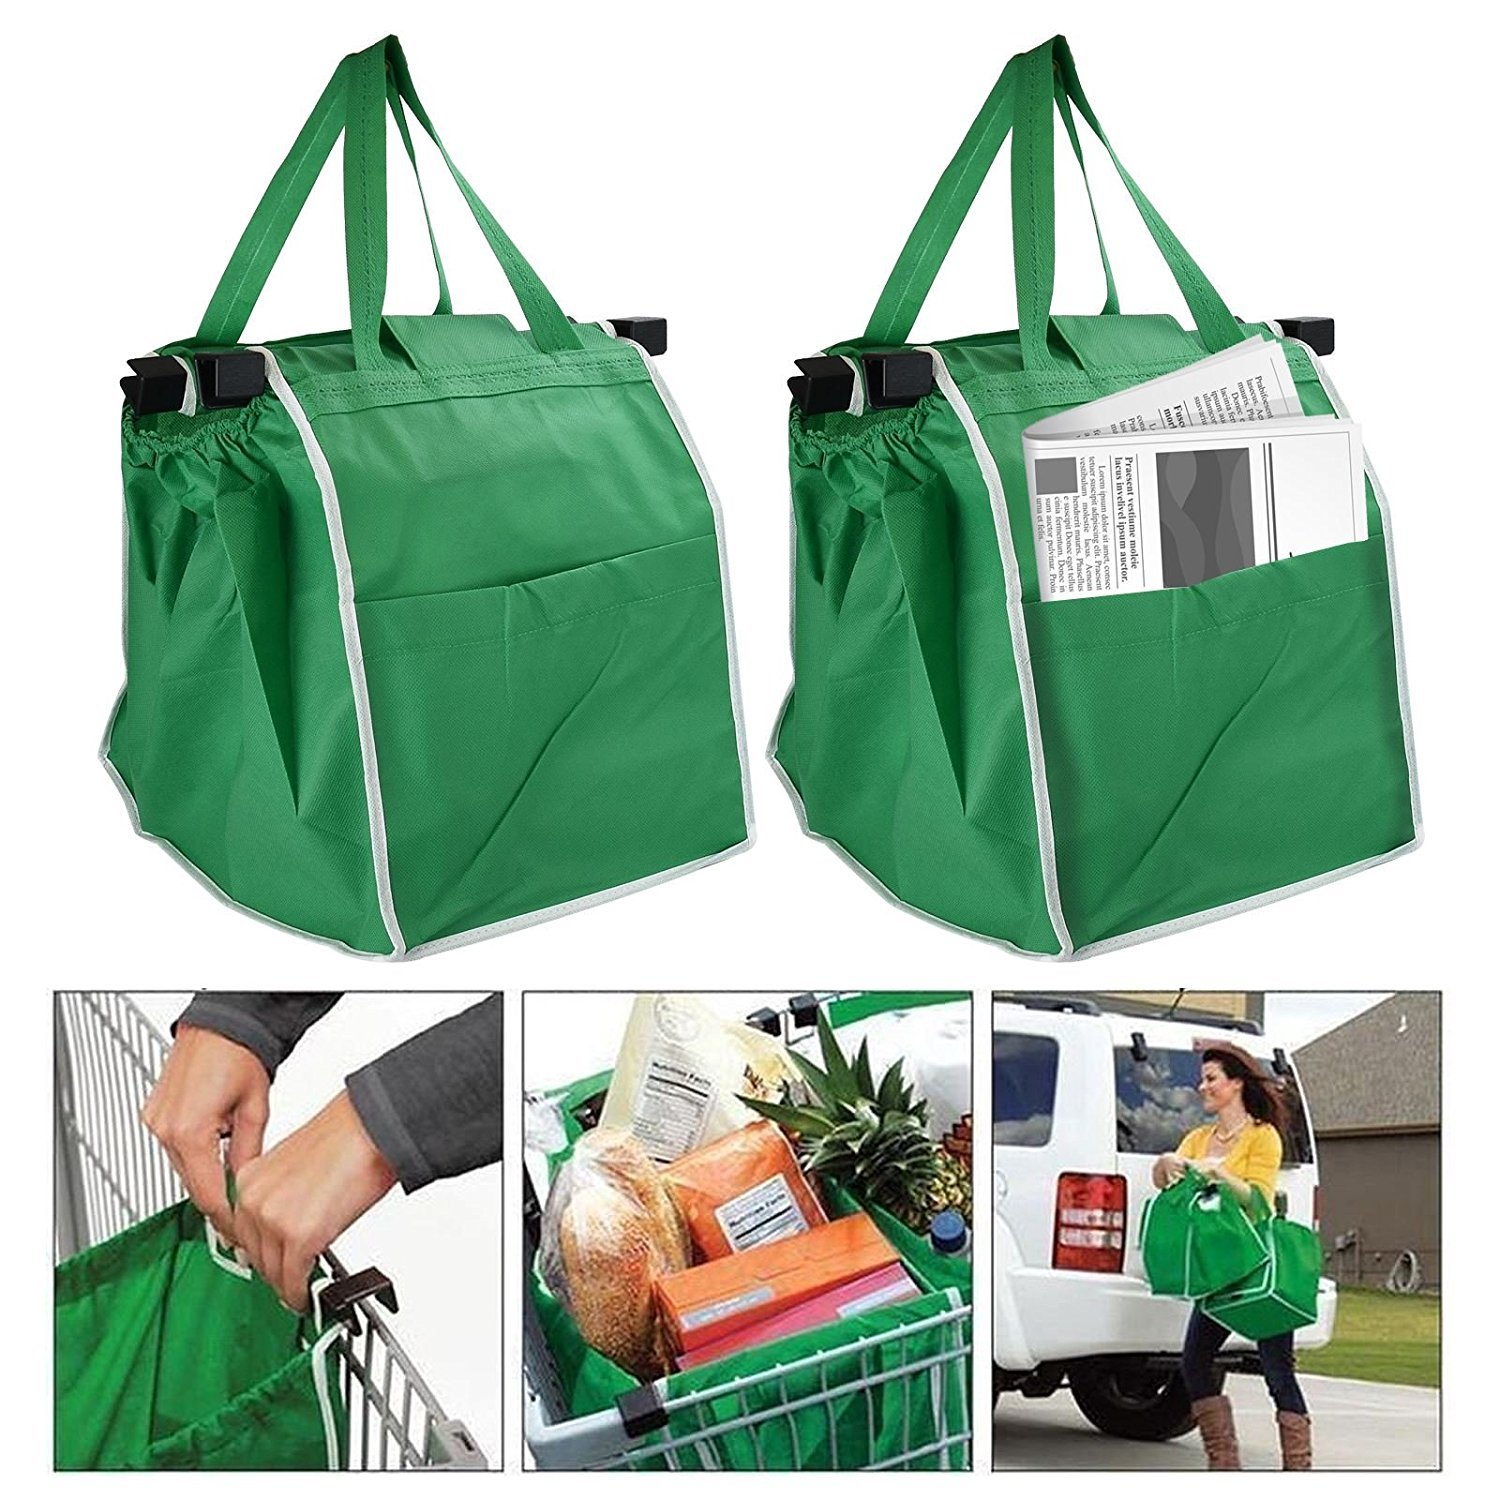 2 Pack Shopping Trolley Bags Eco Friendly Clip On Grocery Carrier Easily Folds Strong Durable Reusable Easy Clean Handy Side Pocket ASAB